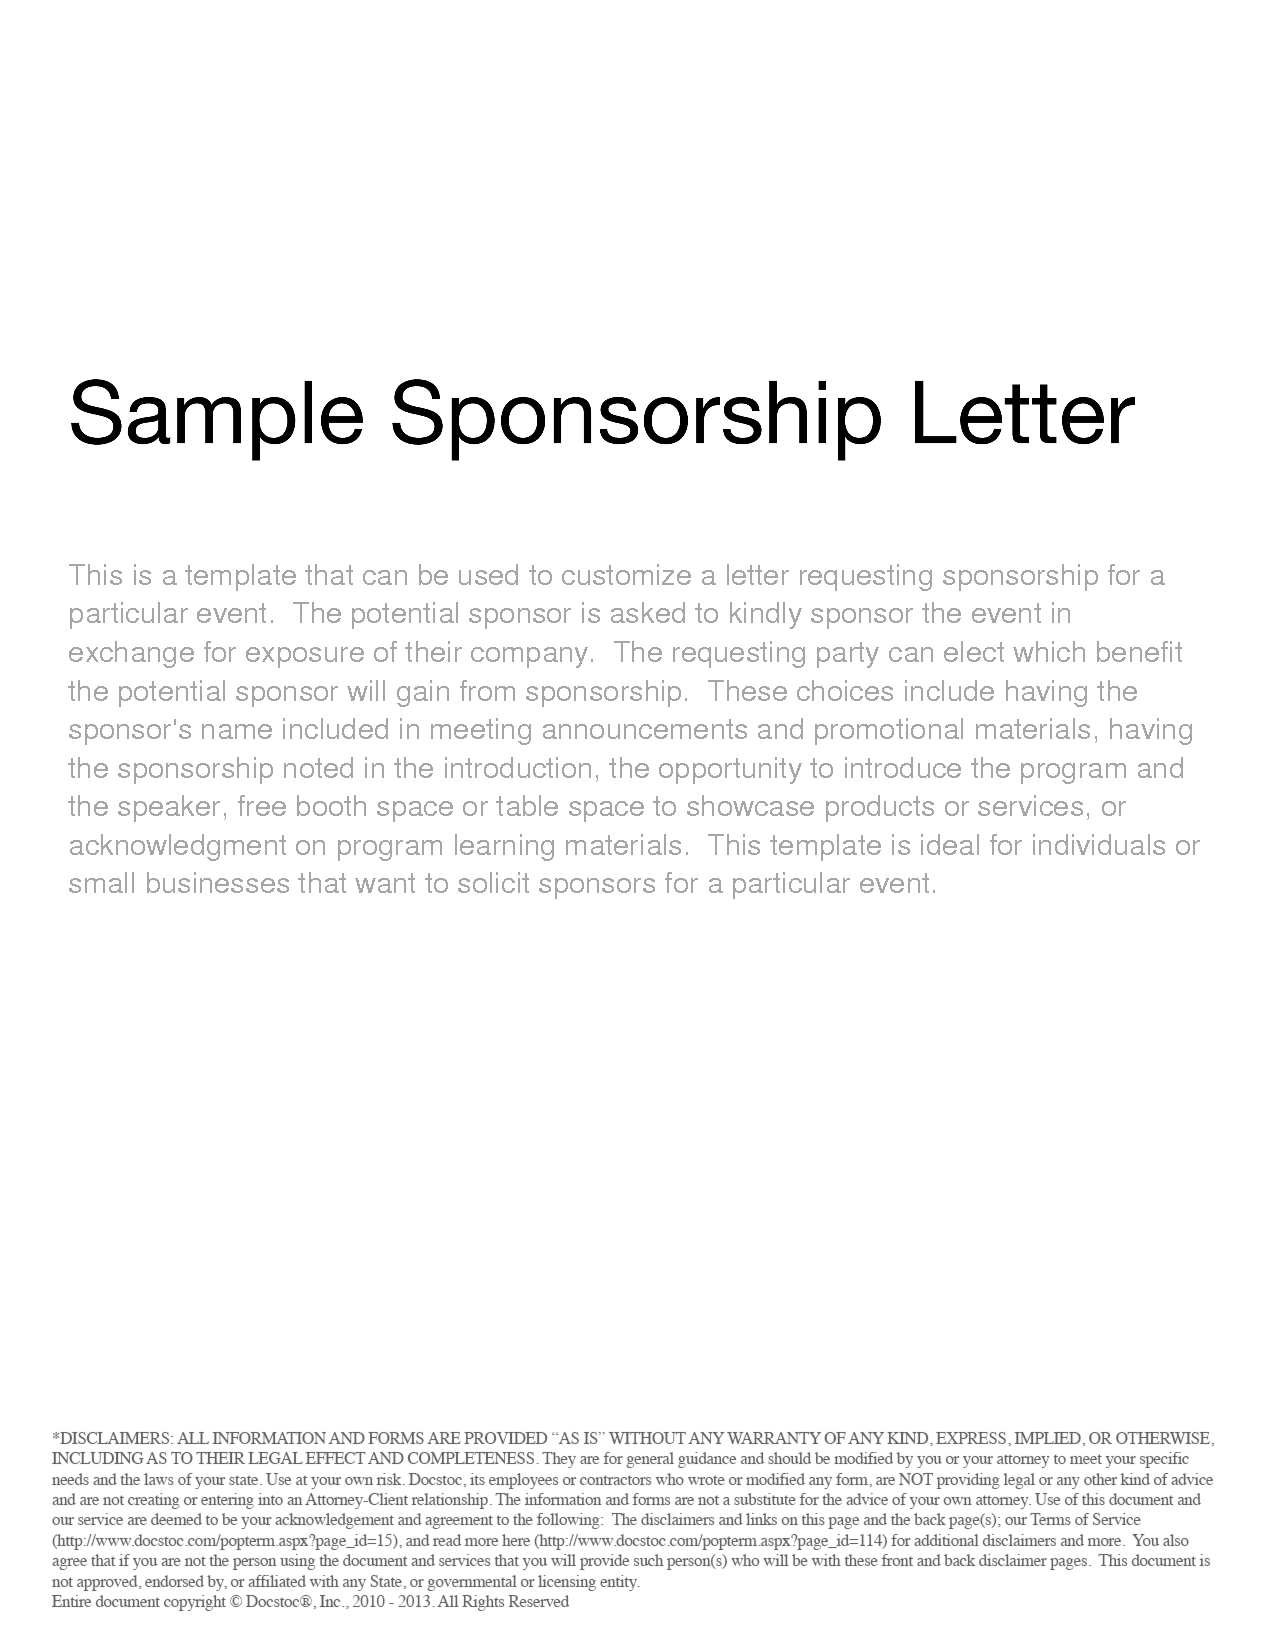 Sample Of A Sponsor Letter from dailyroabox.com